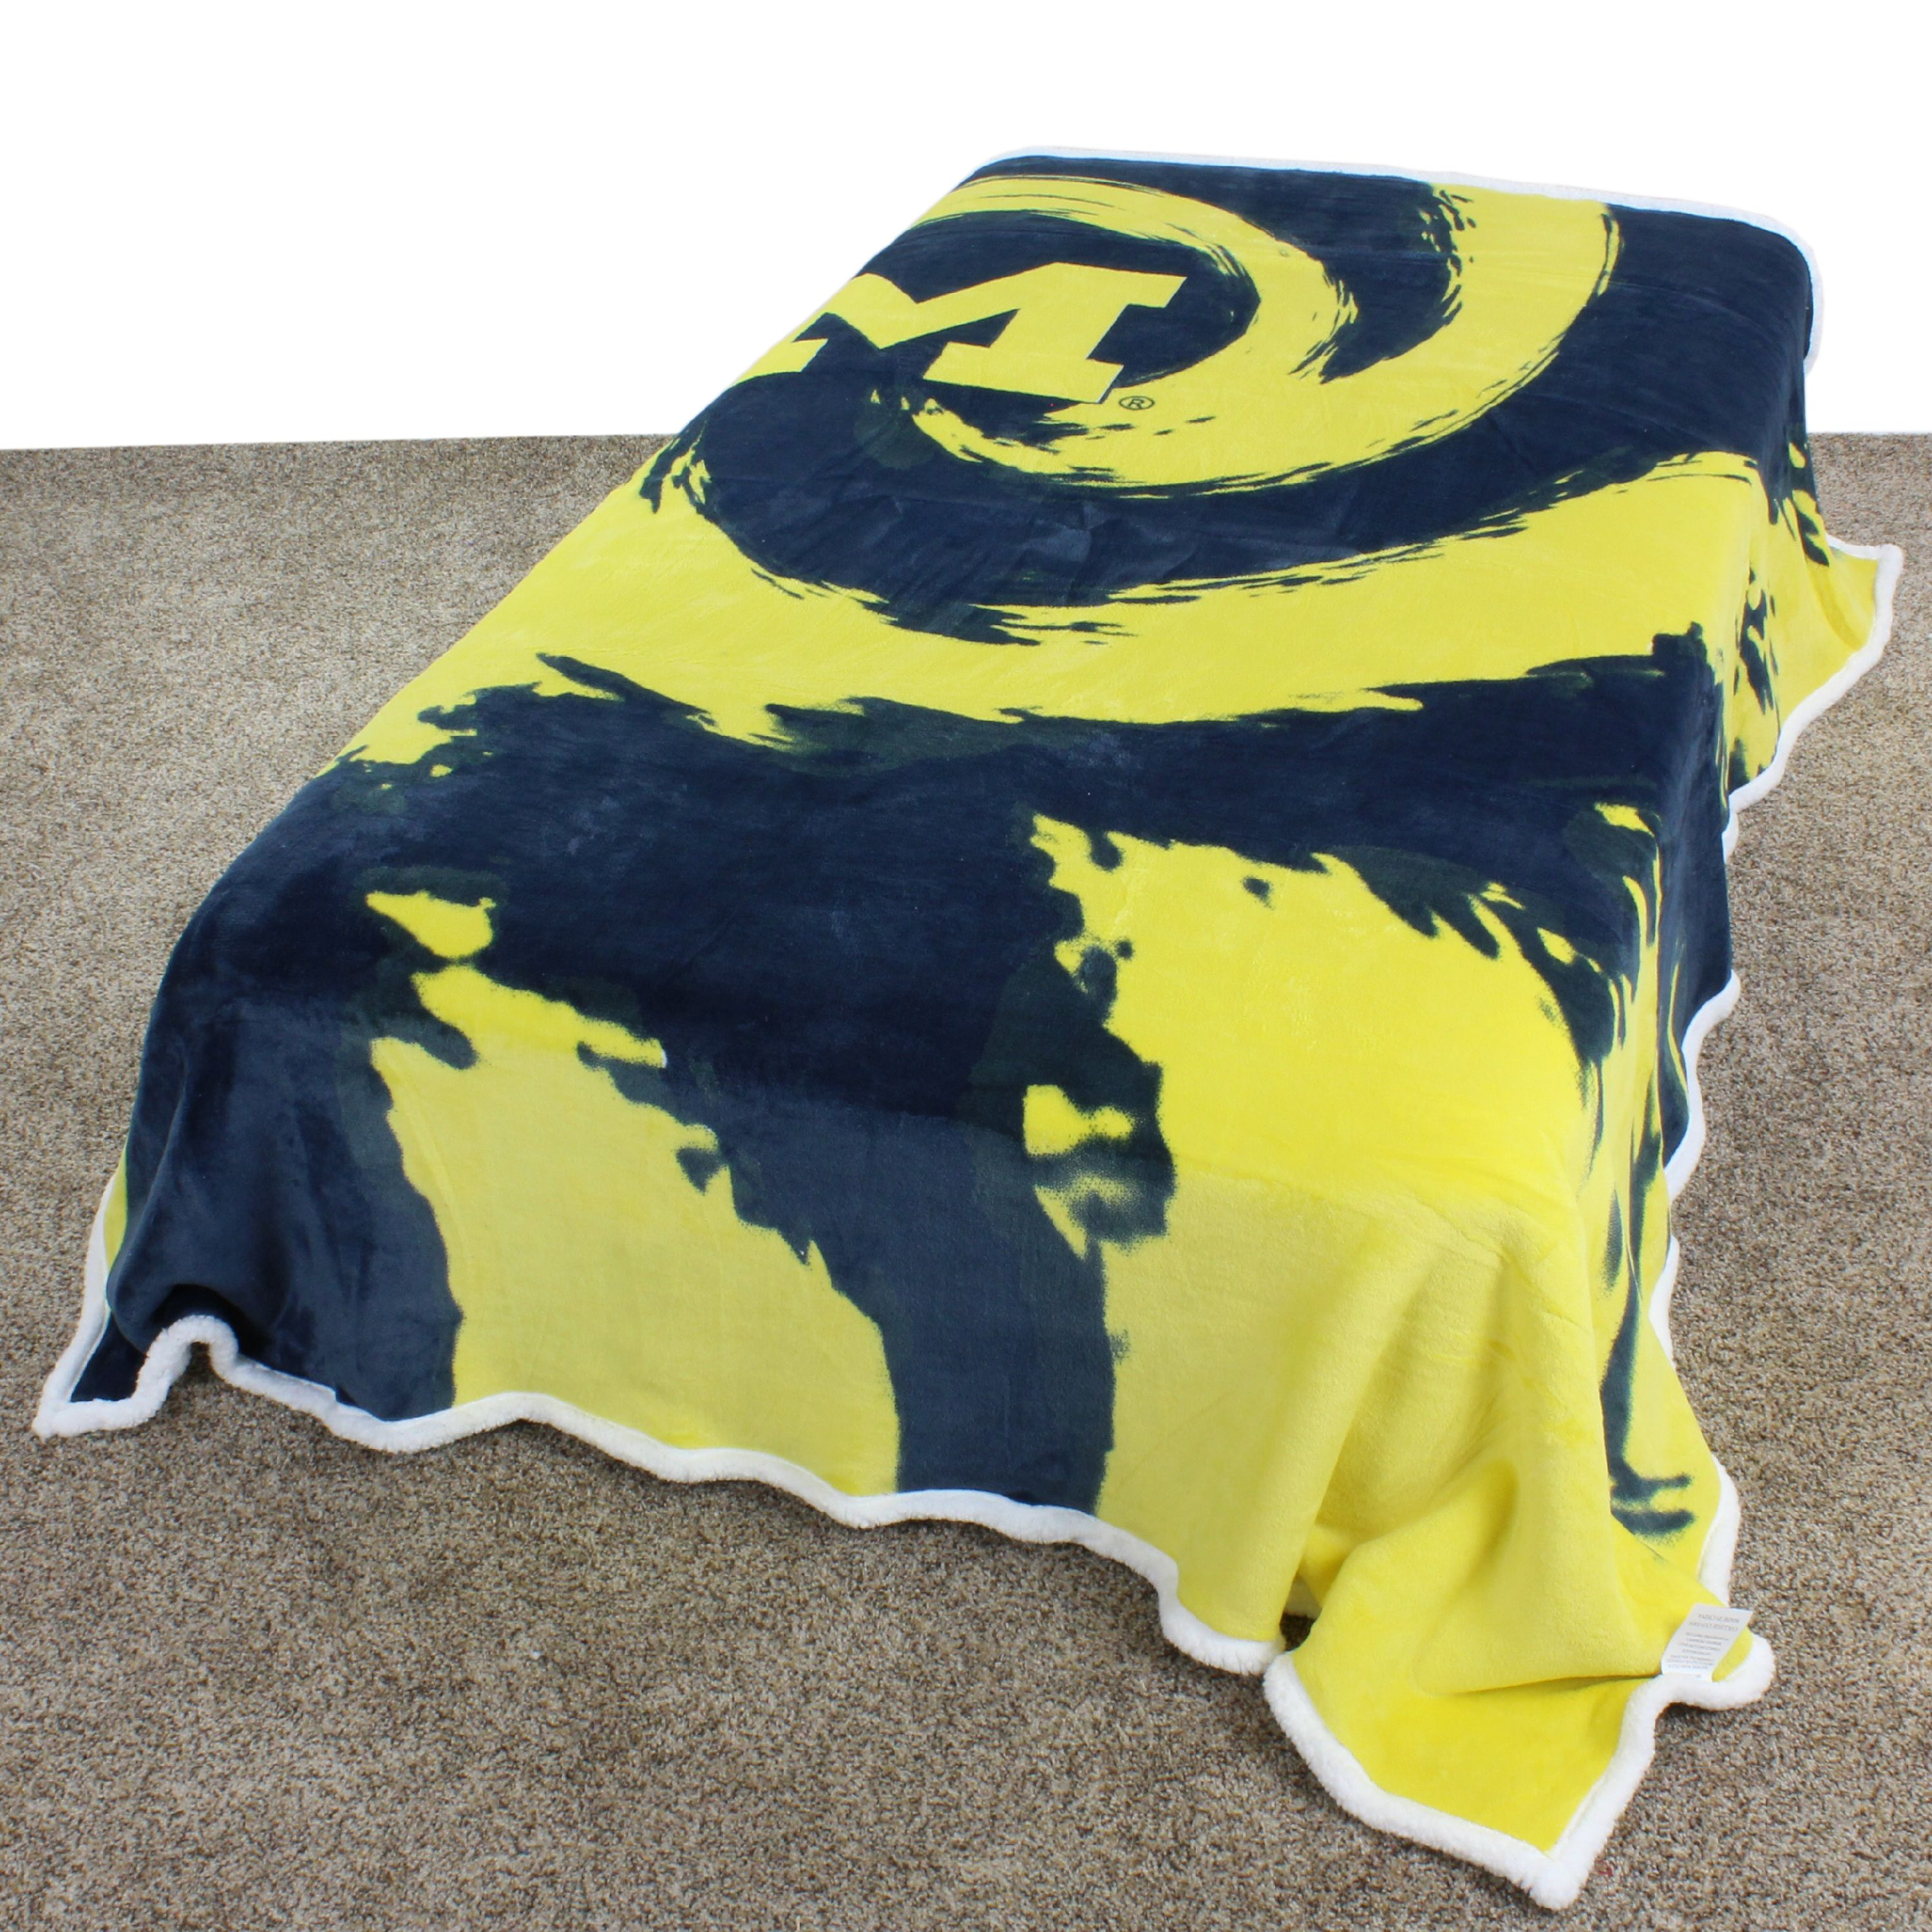 "Michigan Wolverines Super Soft Sherpa Blanket, 63"" x 86"""